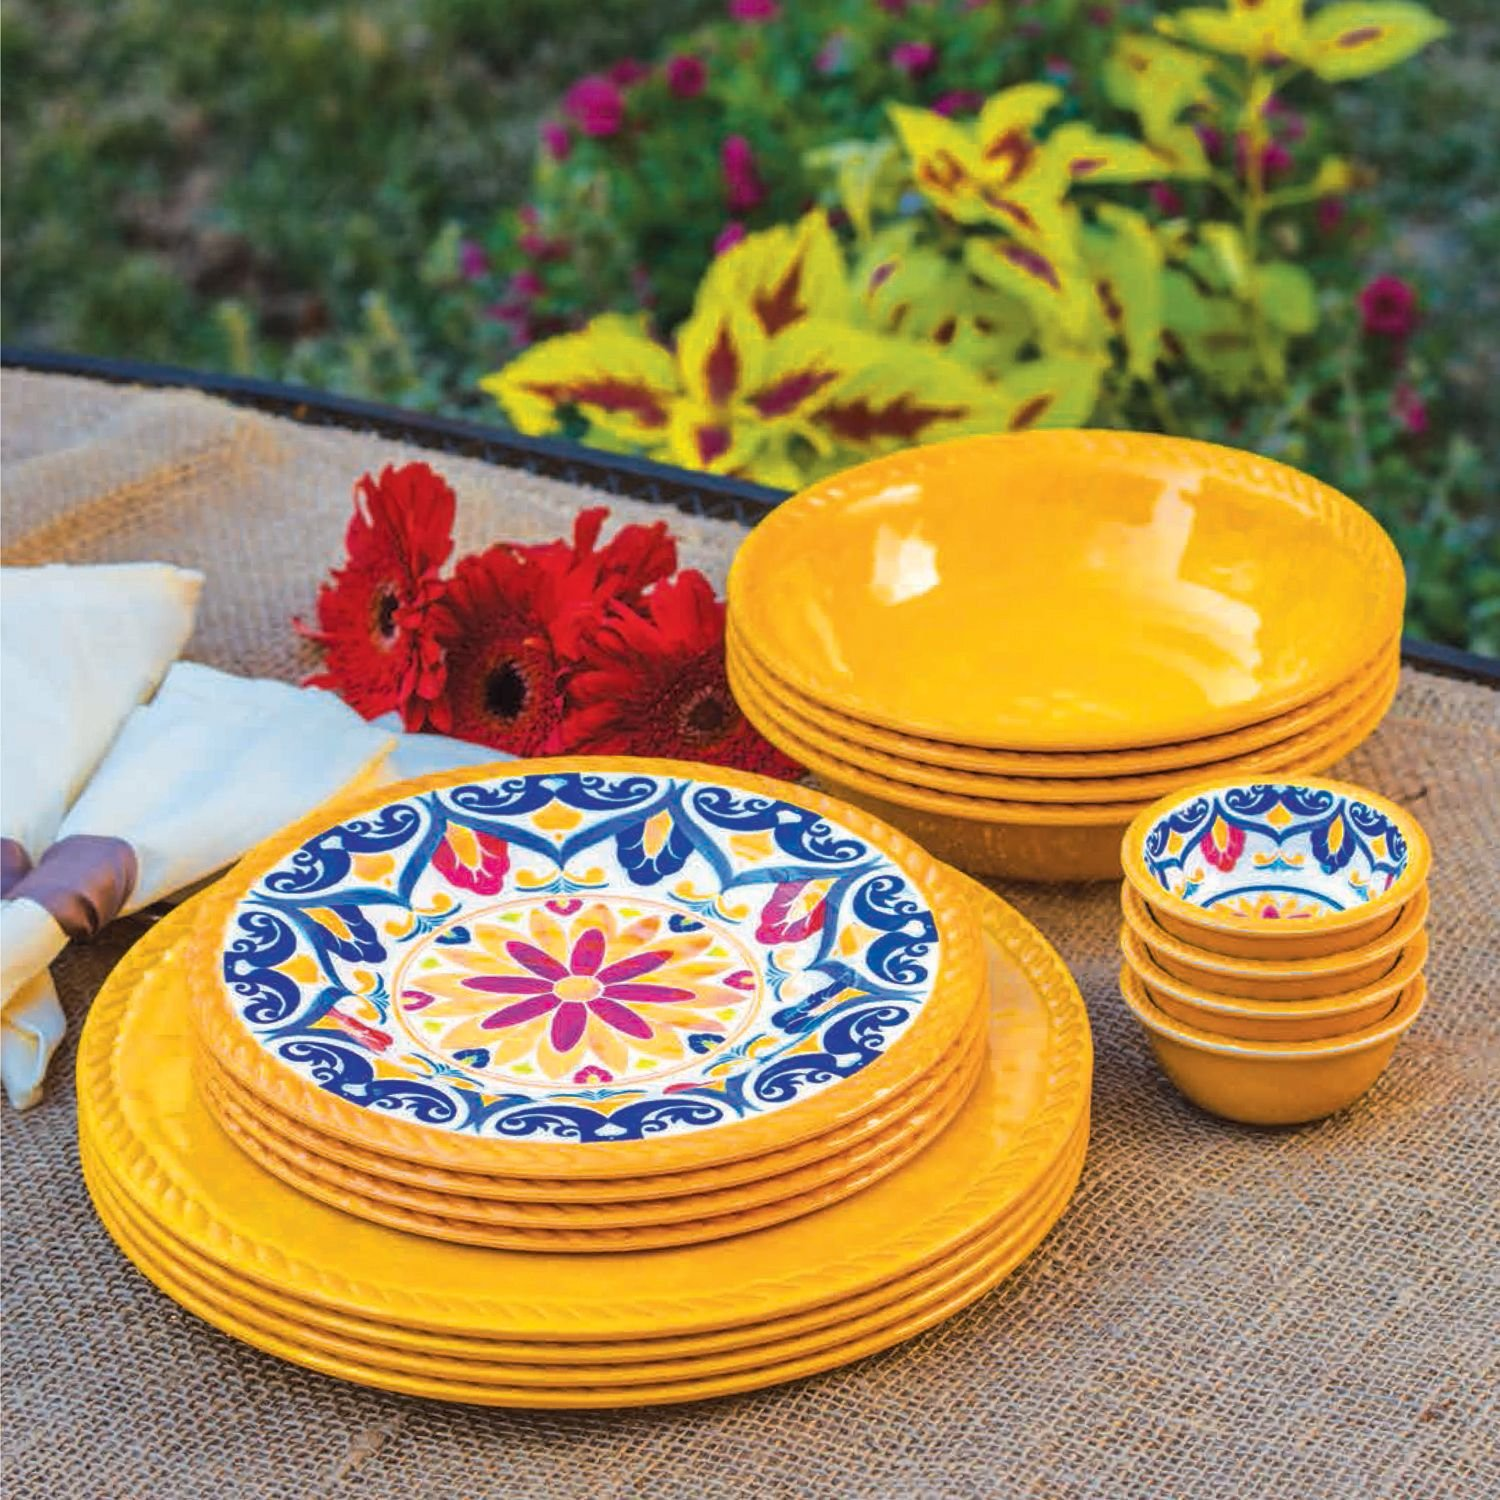 16 Piece Indoor/Outdoor Melamine Dinnerware Set YELLOW kitdxedxcombo50san30001 value kit dixie dinnerware party pack dxedxcombo50 and sharpie permanent marker san30001